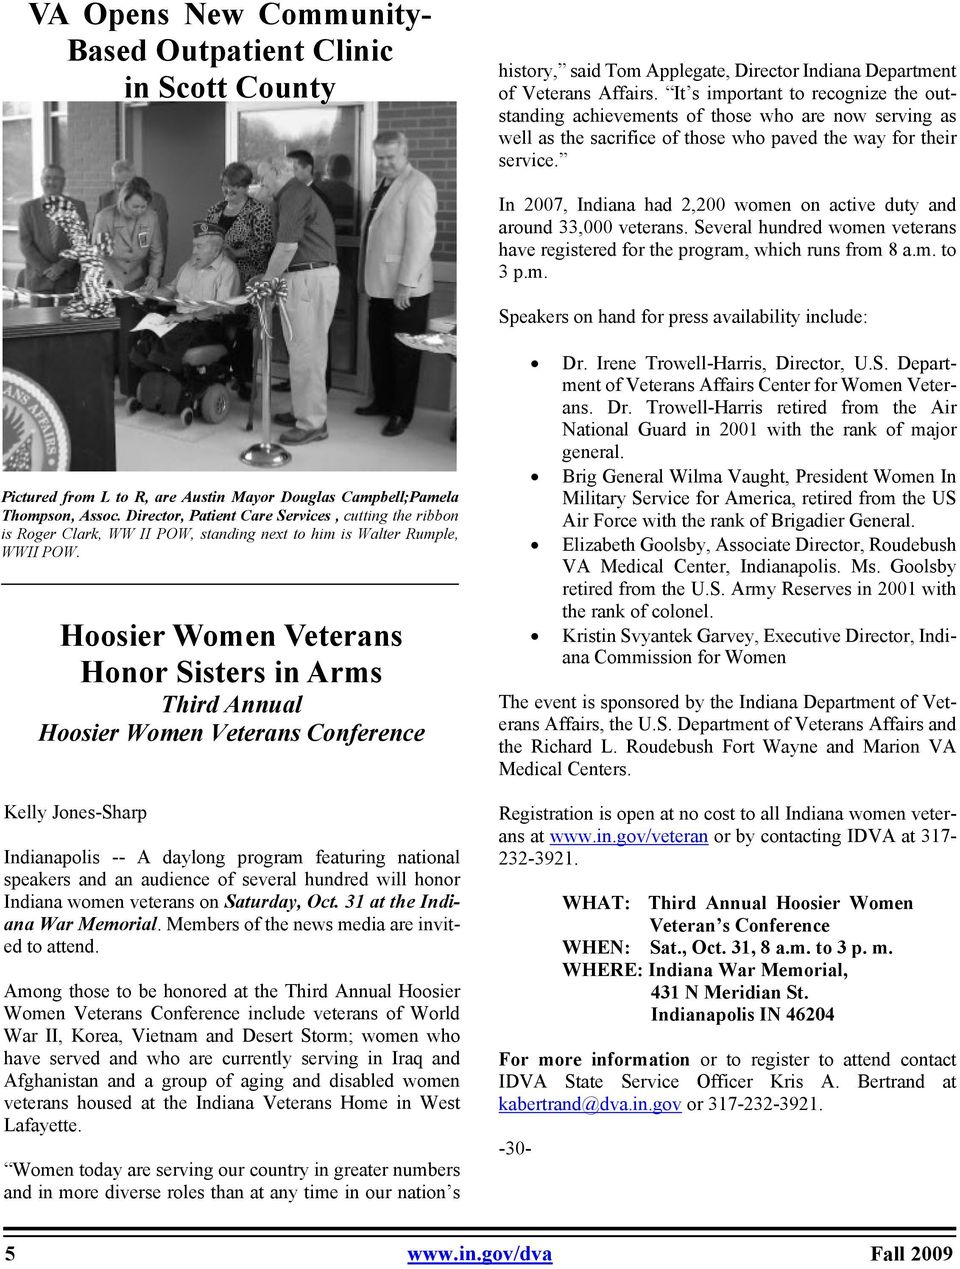 In 2007, Indiana had 2,200 women on active duty and around 33,000 veterans. Several hundred women veterans have registered for the program, which runs from 8 a.m. to 3 p.m. Speakers on hand for press availability include: Pictured from L to R, are Austin Mayor Douglas Campbell;Pamela Thompson, Assoc.